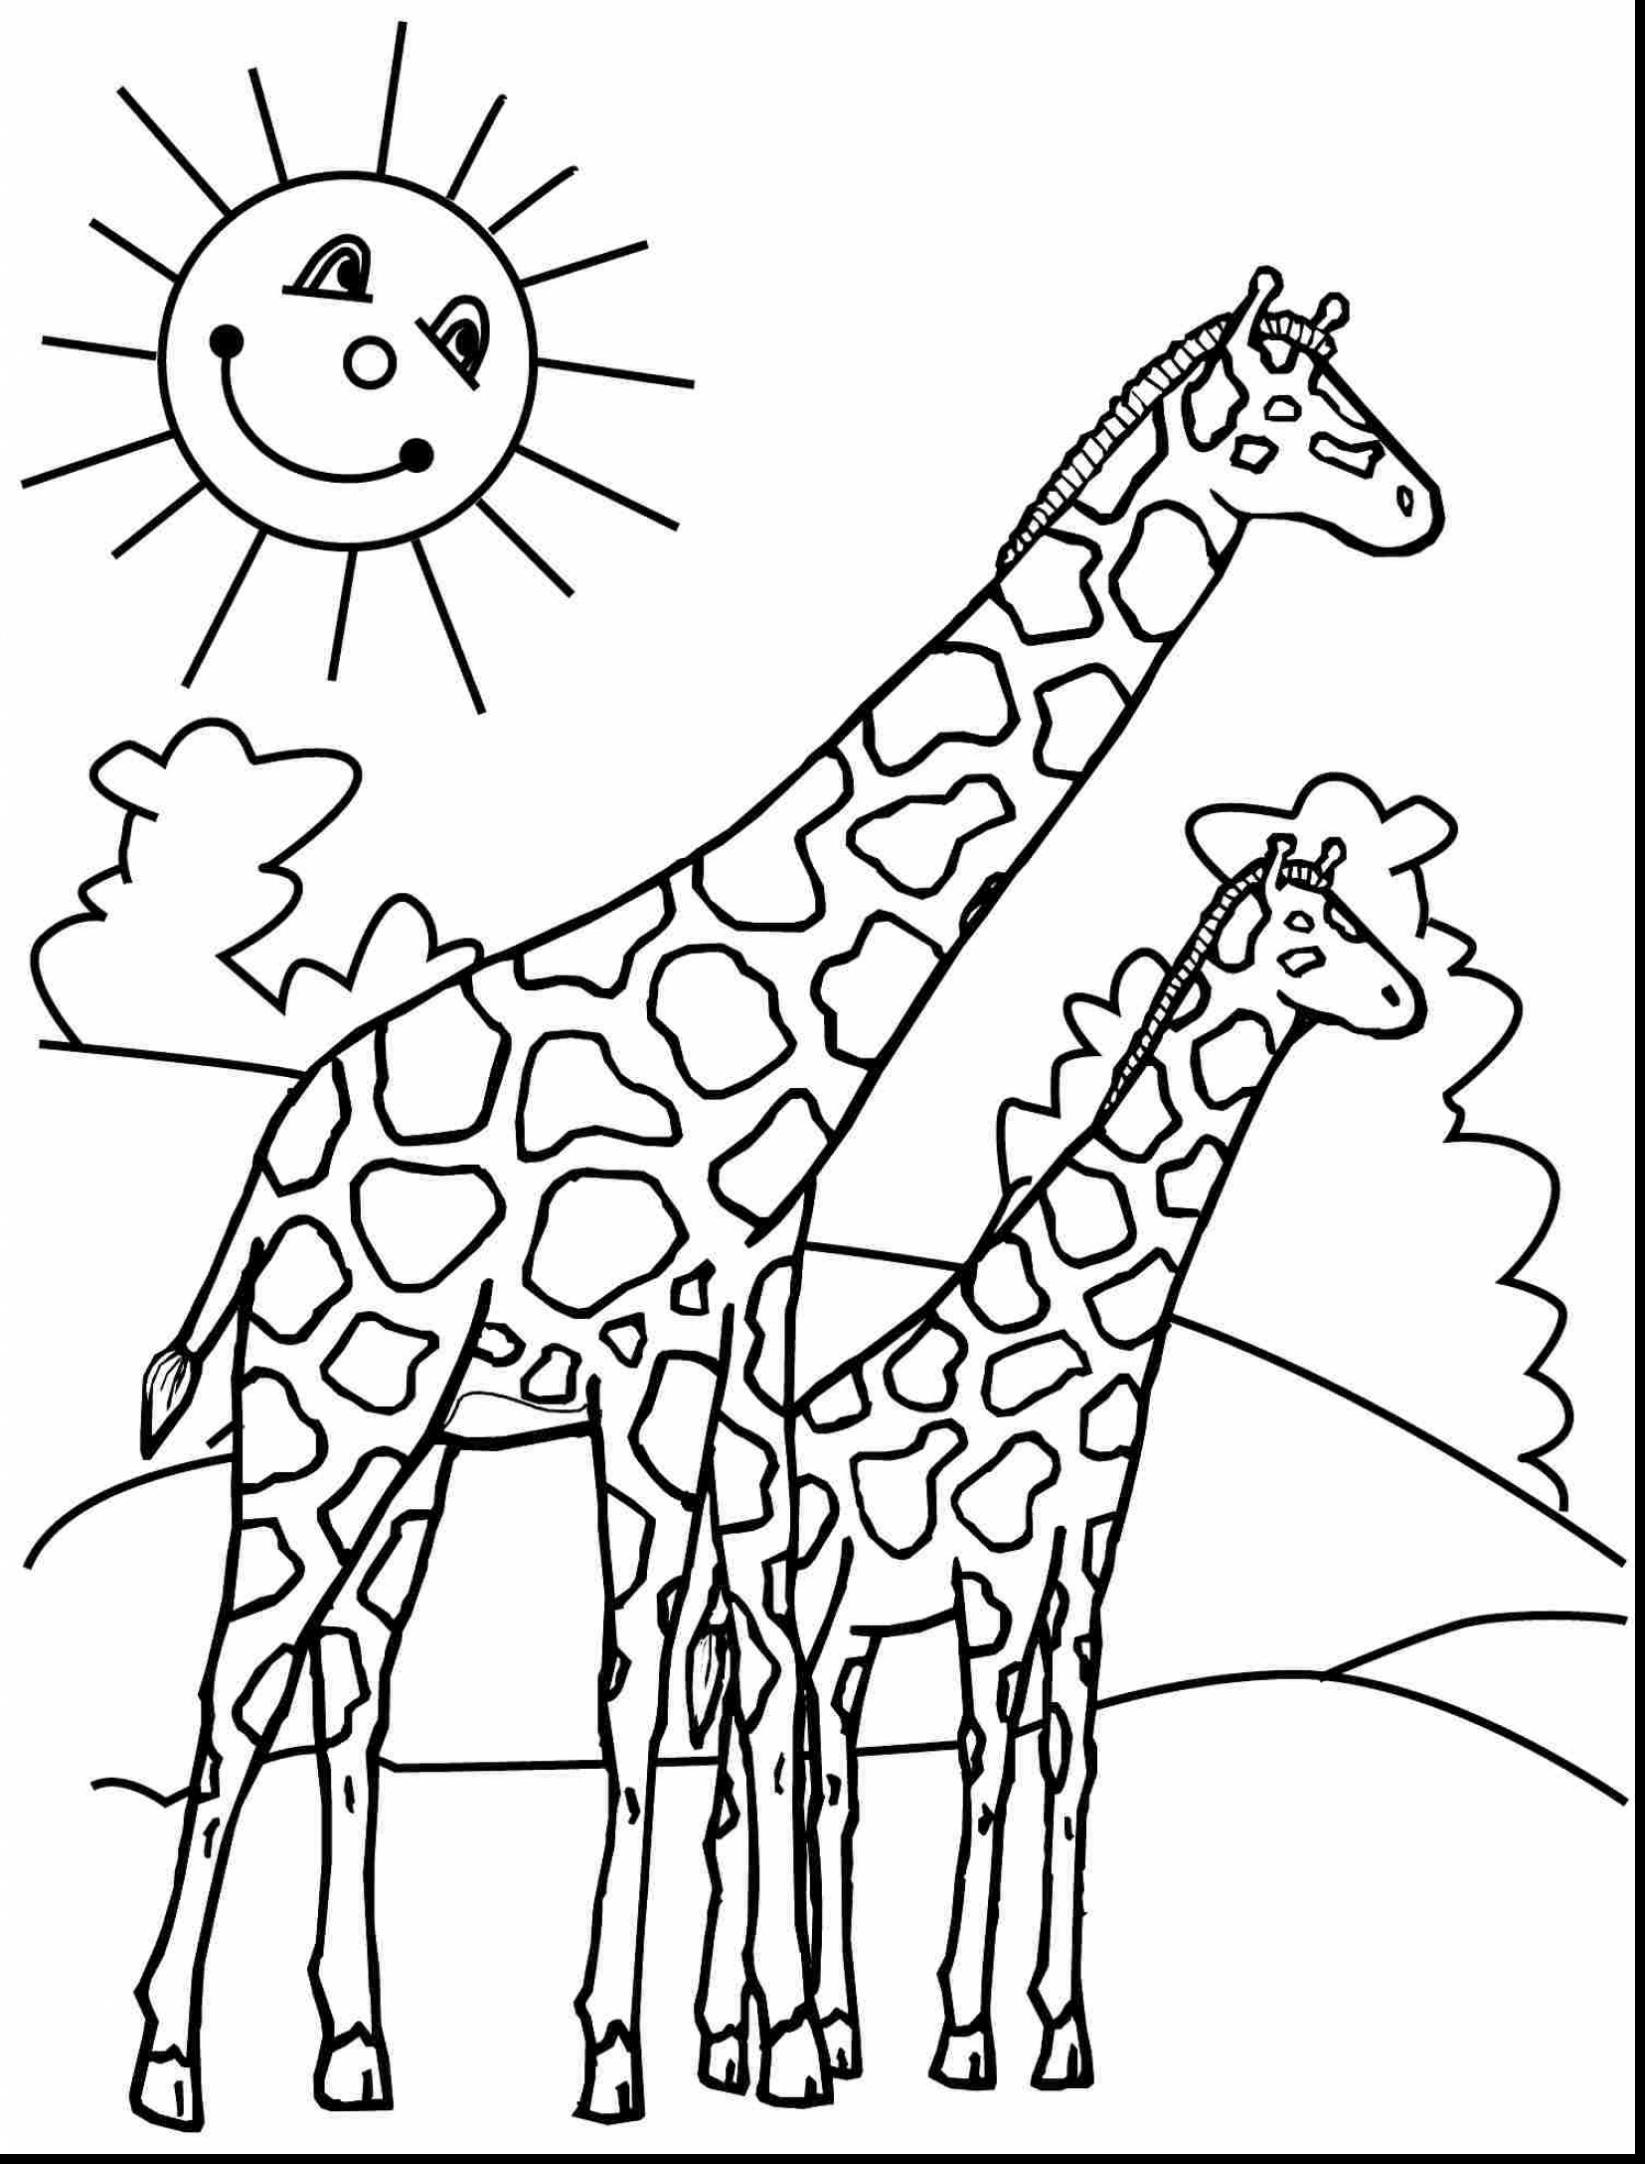 Cute Giraffe Drawing At Getdrawings